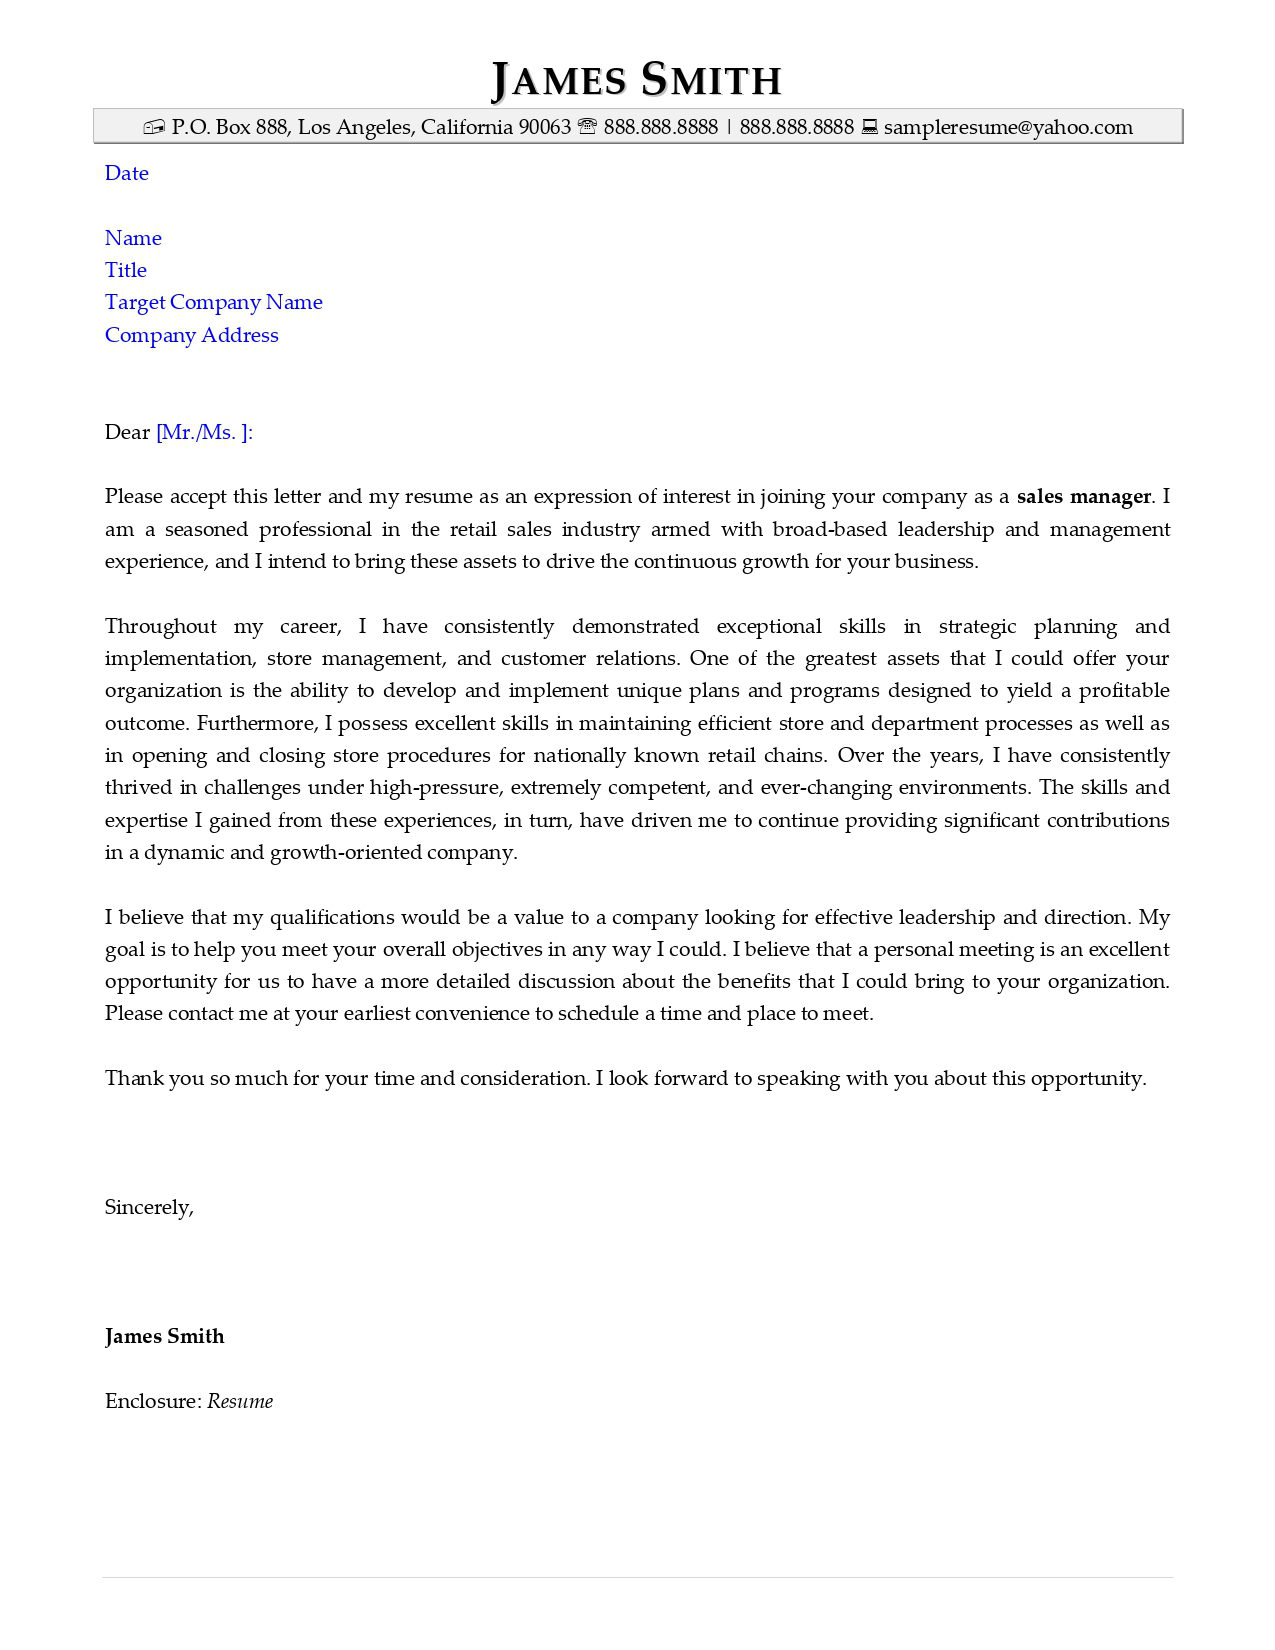 Application resume cover letter sample from Resume Valley